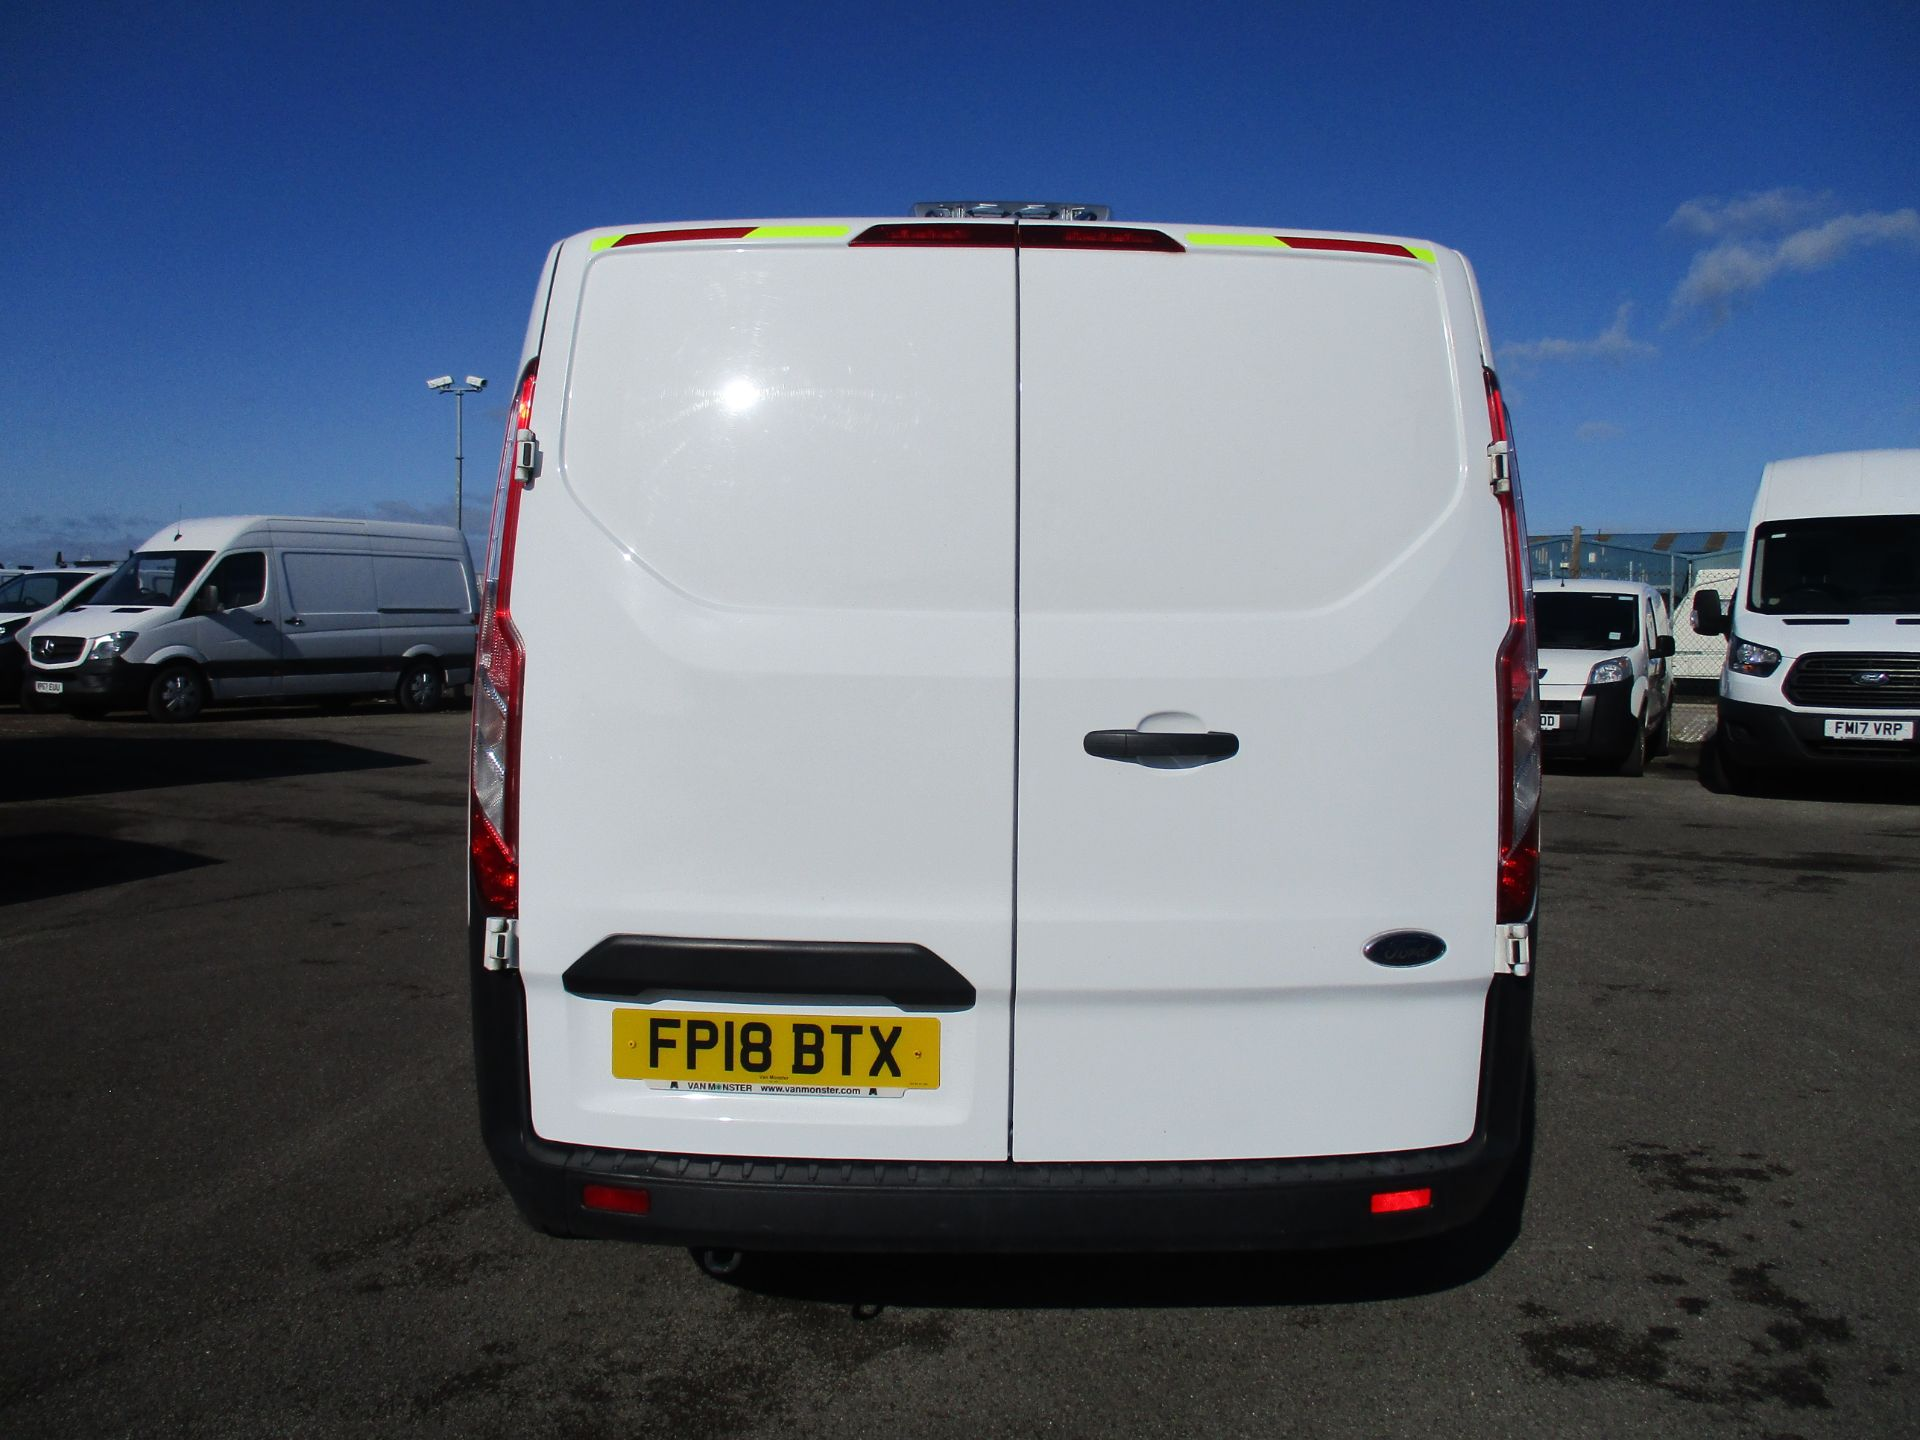 2018 Ford Transit Custom 300 L1 DIESEL FWD 2.0 TDCI 105PS LOW ROOF VAN EURO 6 (FP18BTX) Thumbnail 6